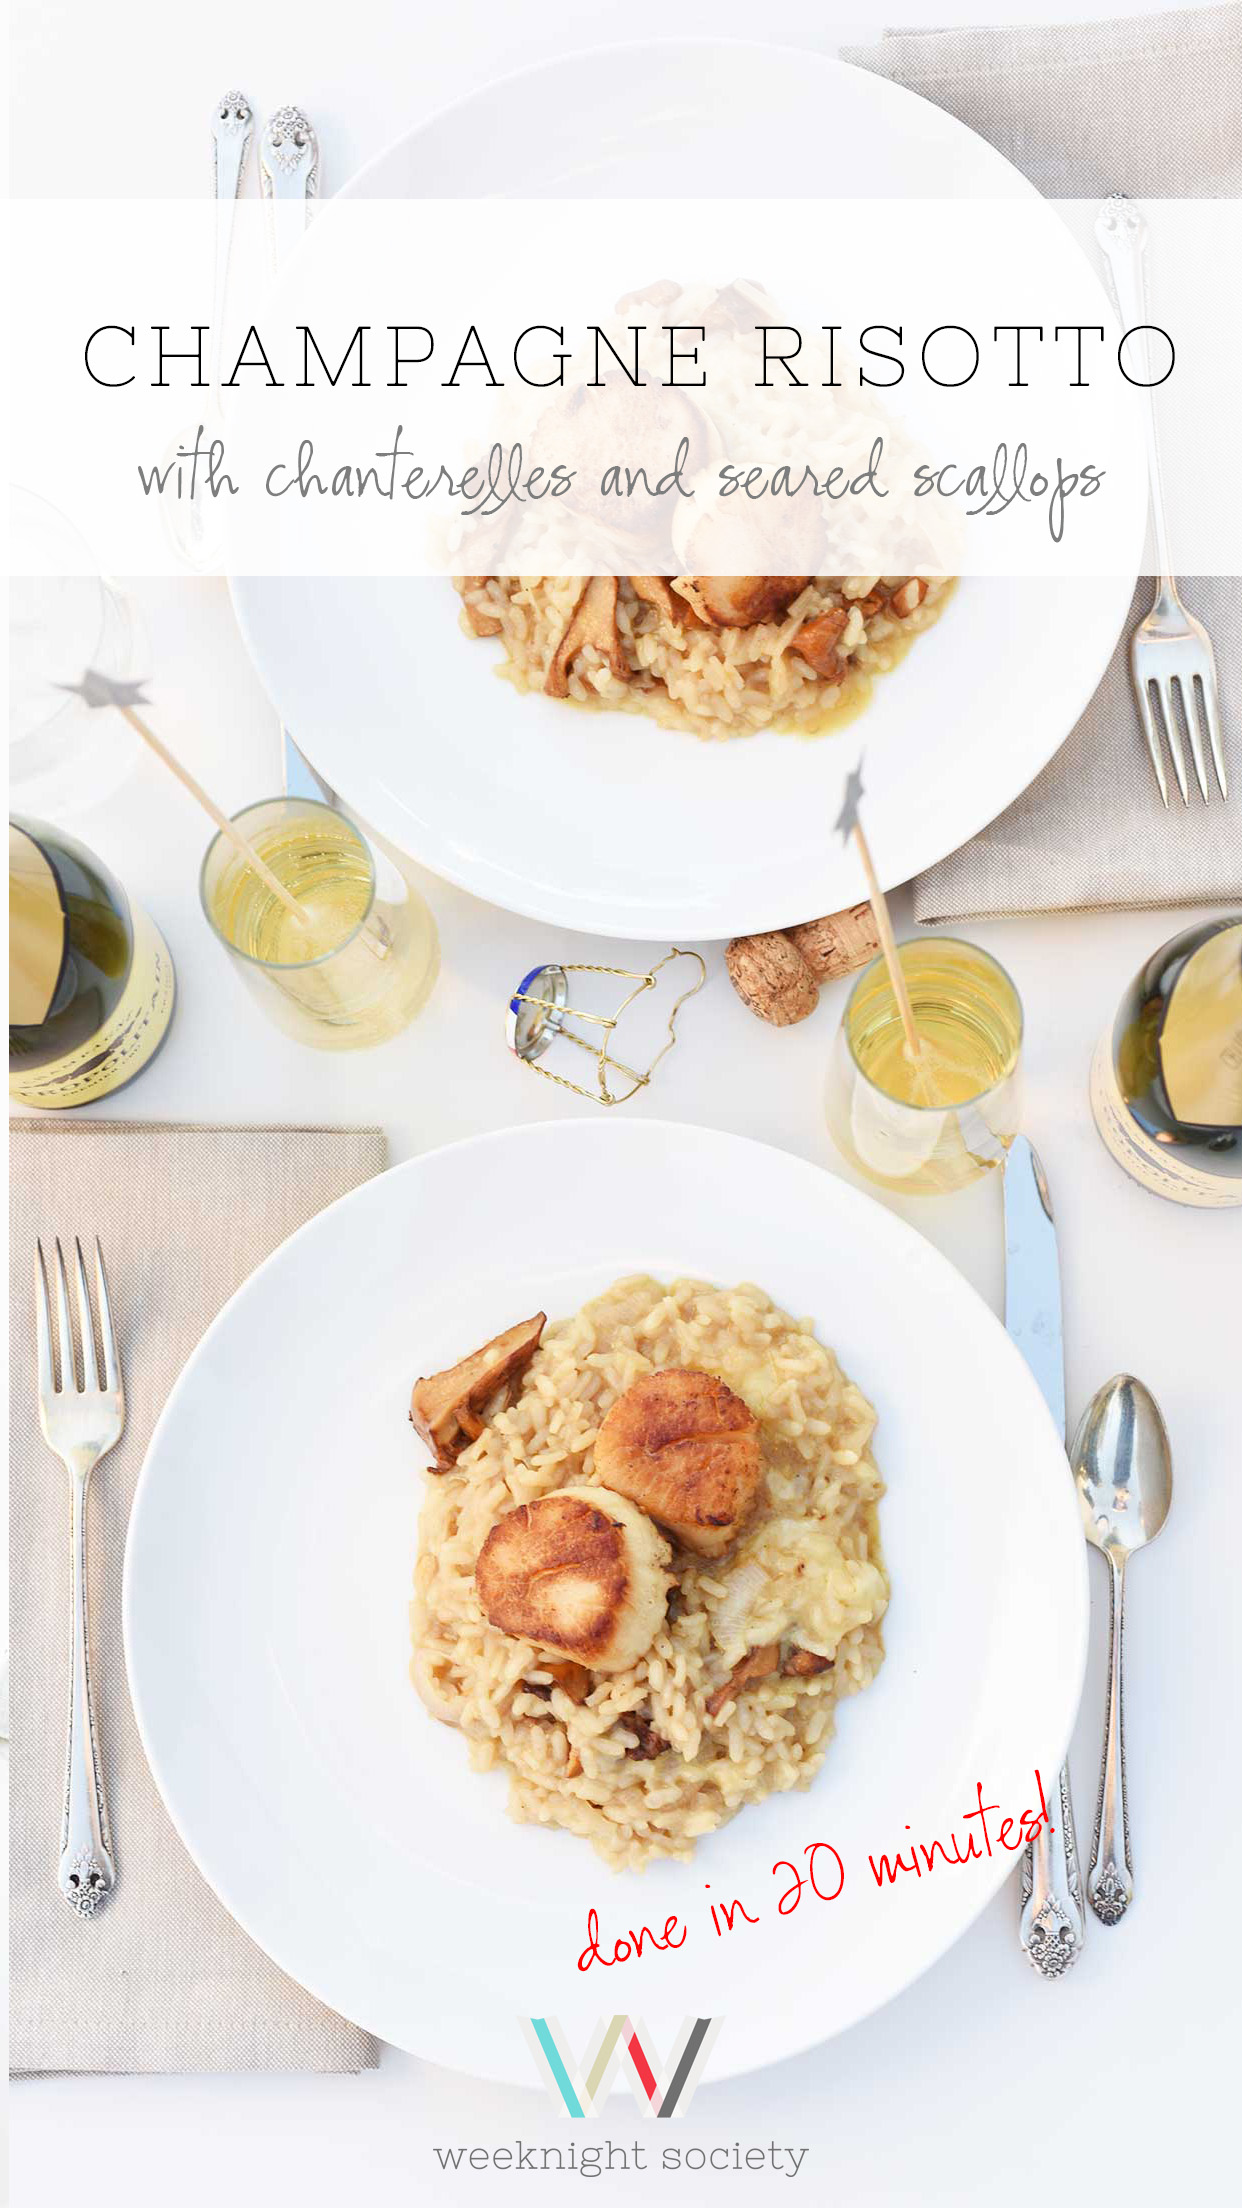 Weeknight Society | Champagne Risotto | cooks in 20 minutes!